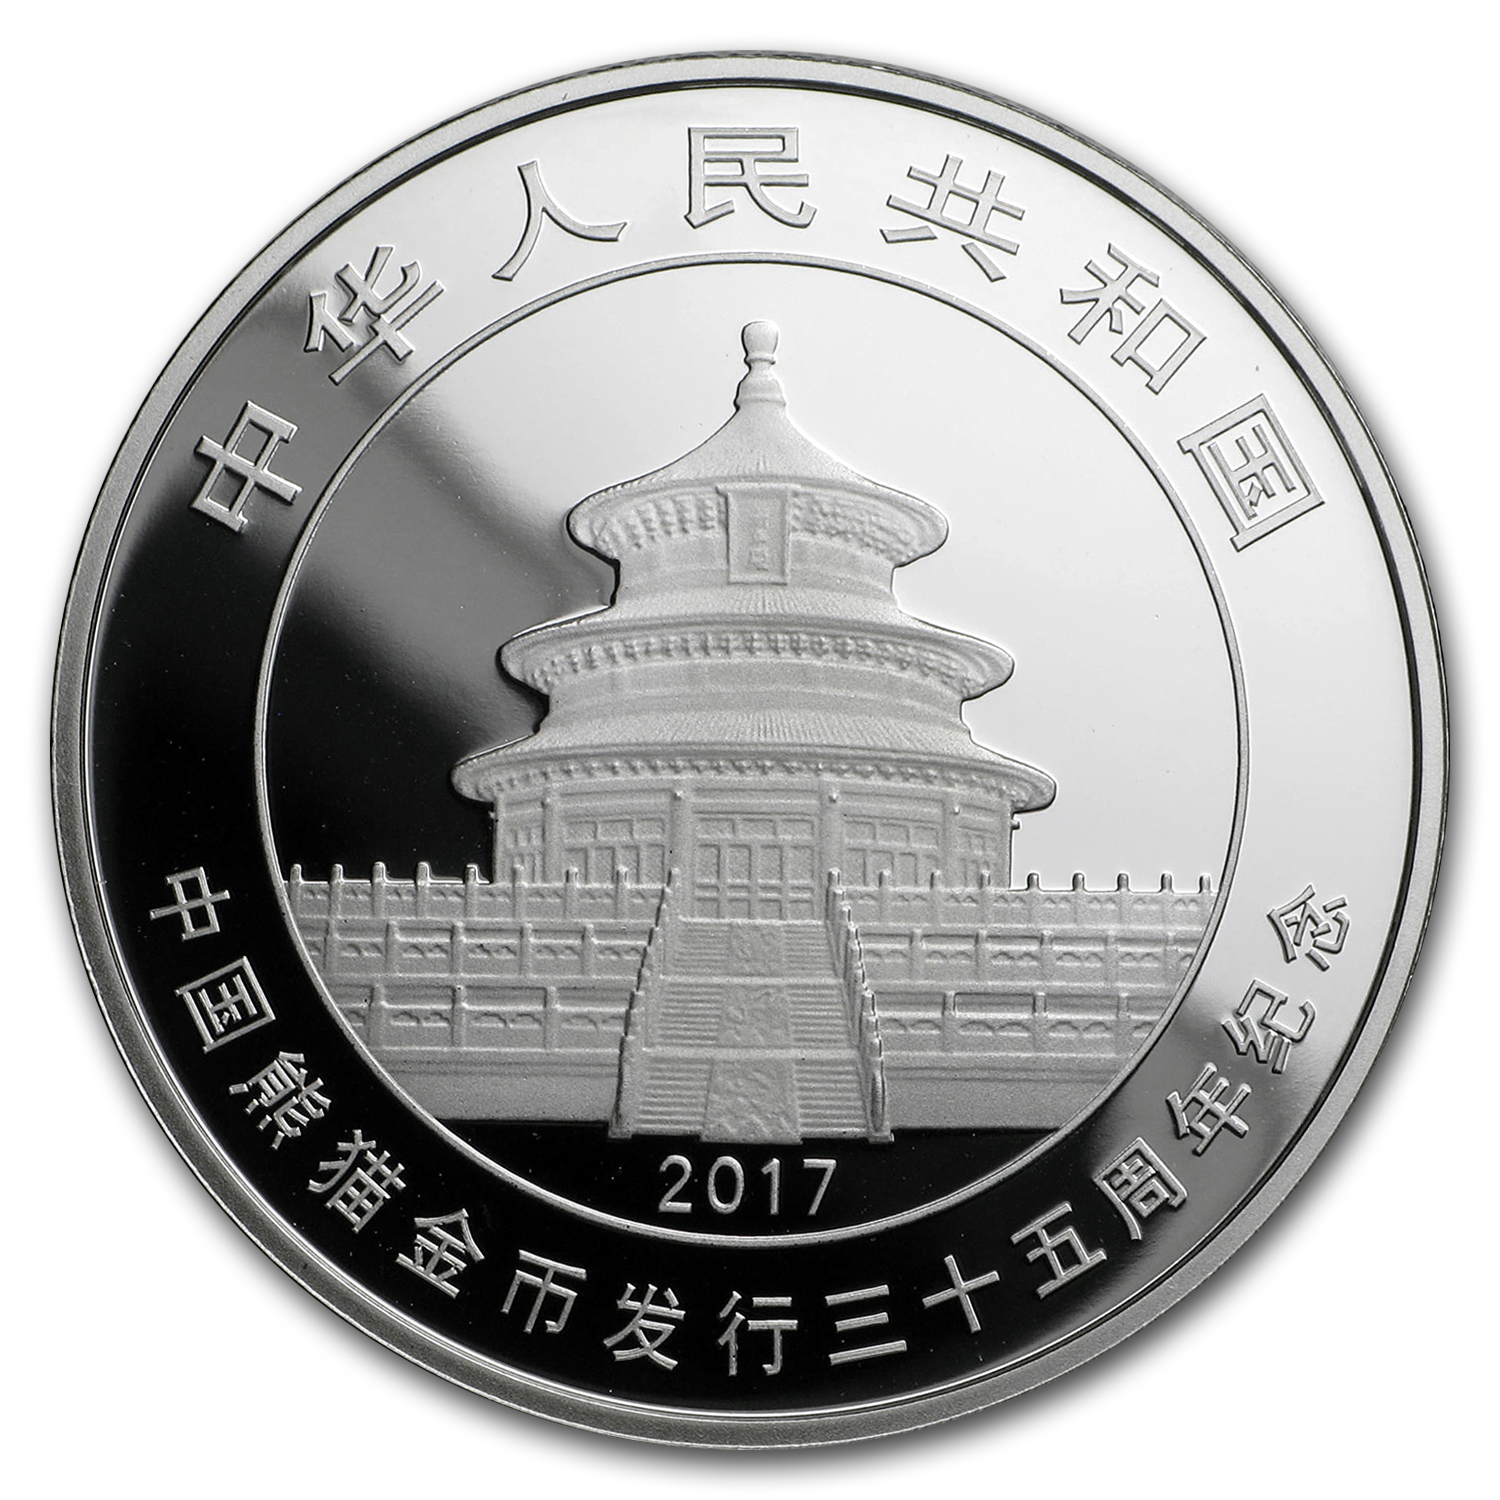 2017 China 15 g Silver 35th Anniversary of Gold Panda